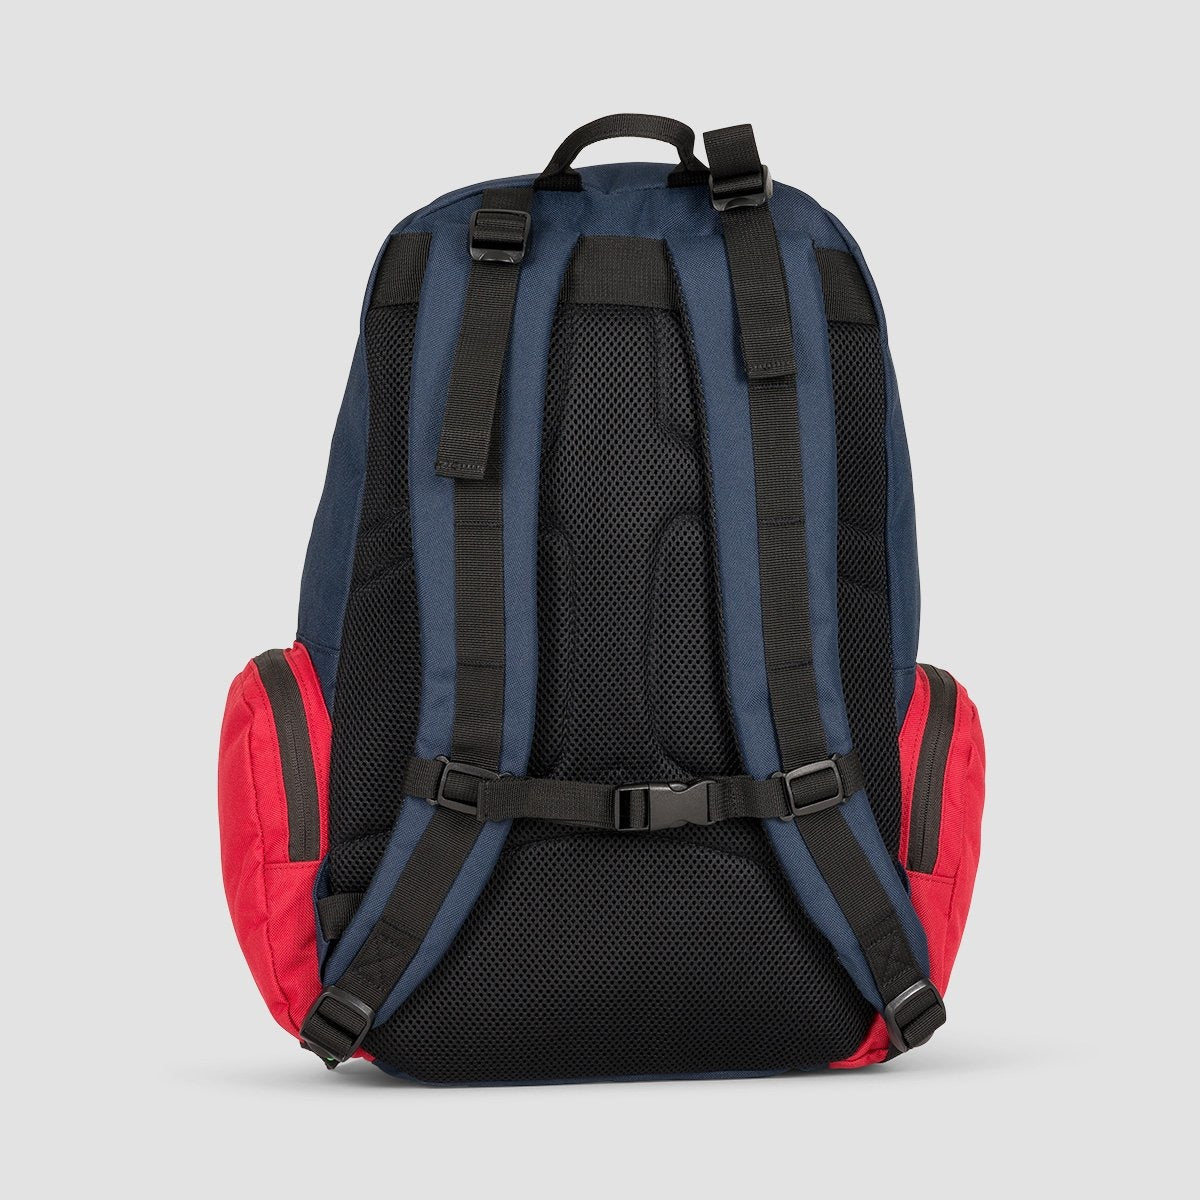 DC The Breed 26L Backpack Black Iris - Accessories